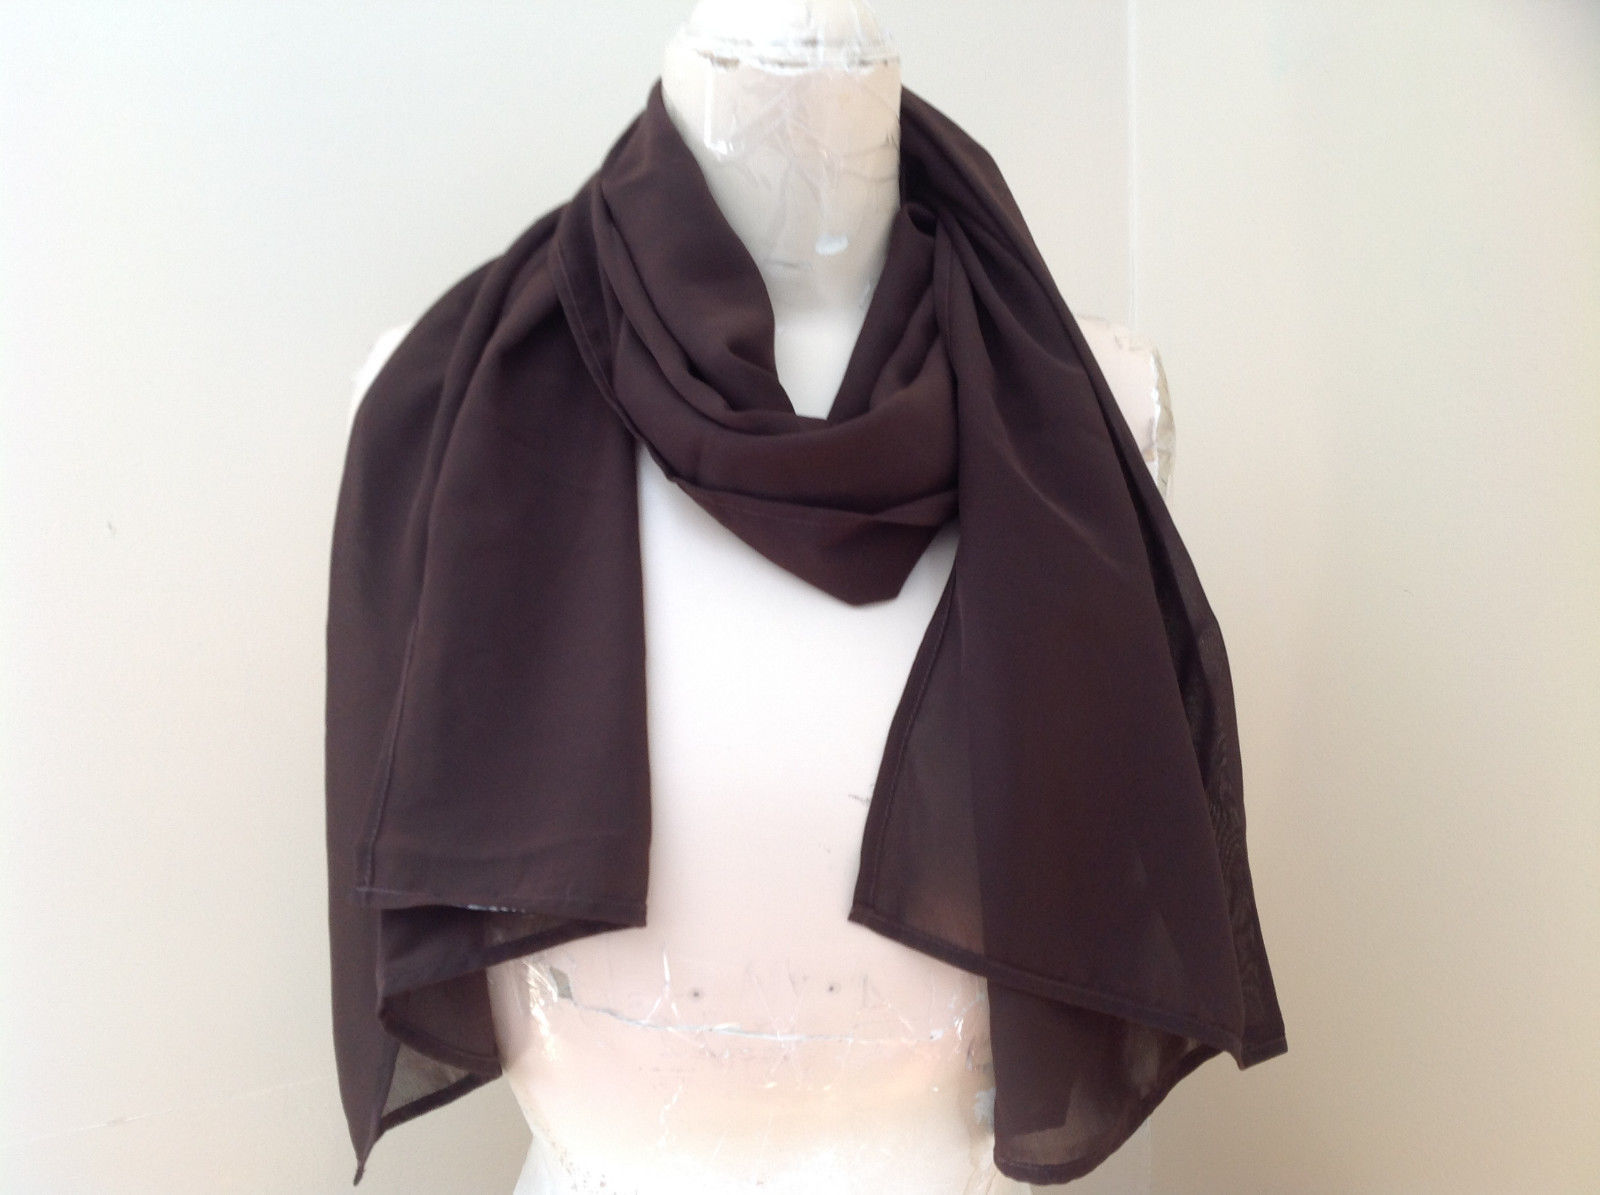 Dark Brown Fashion Scarf Chiffon Like Material by Magic Scarf Company